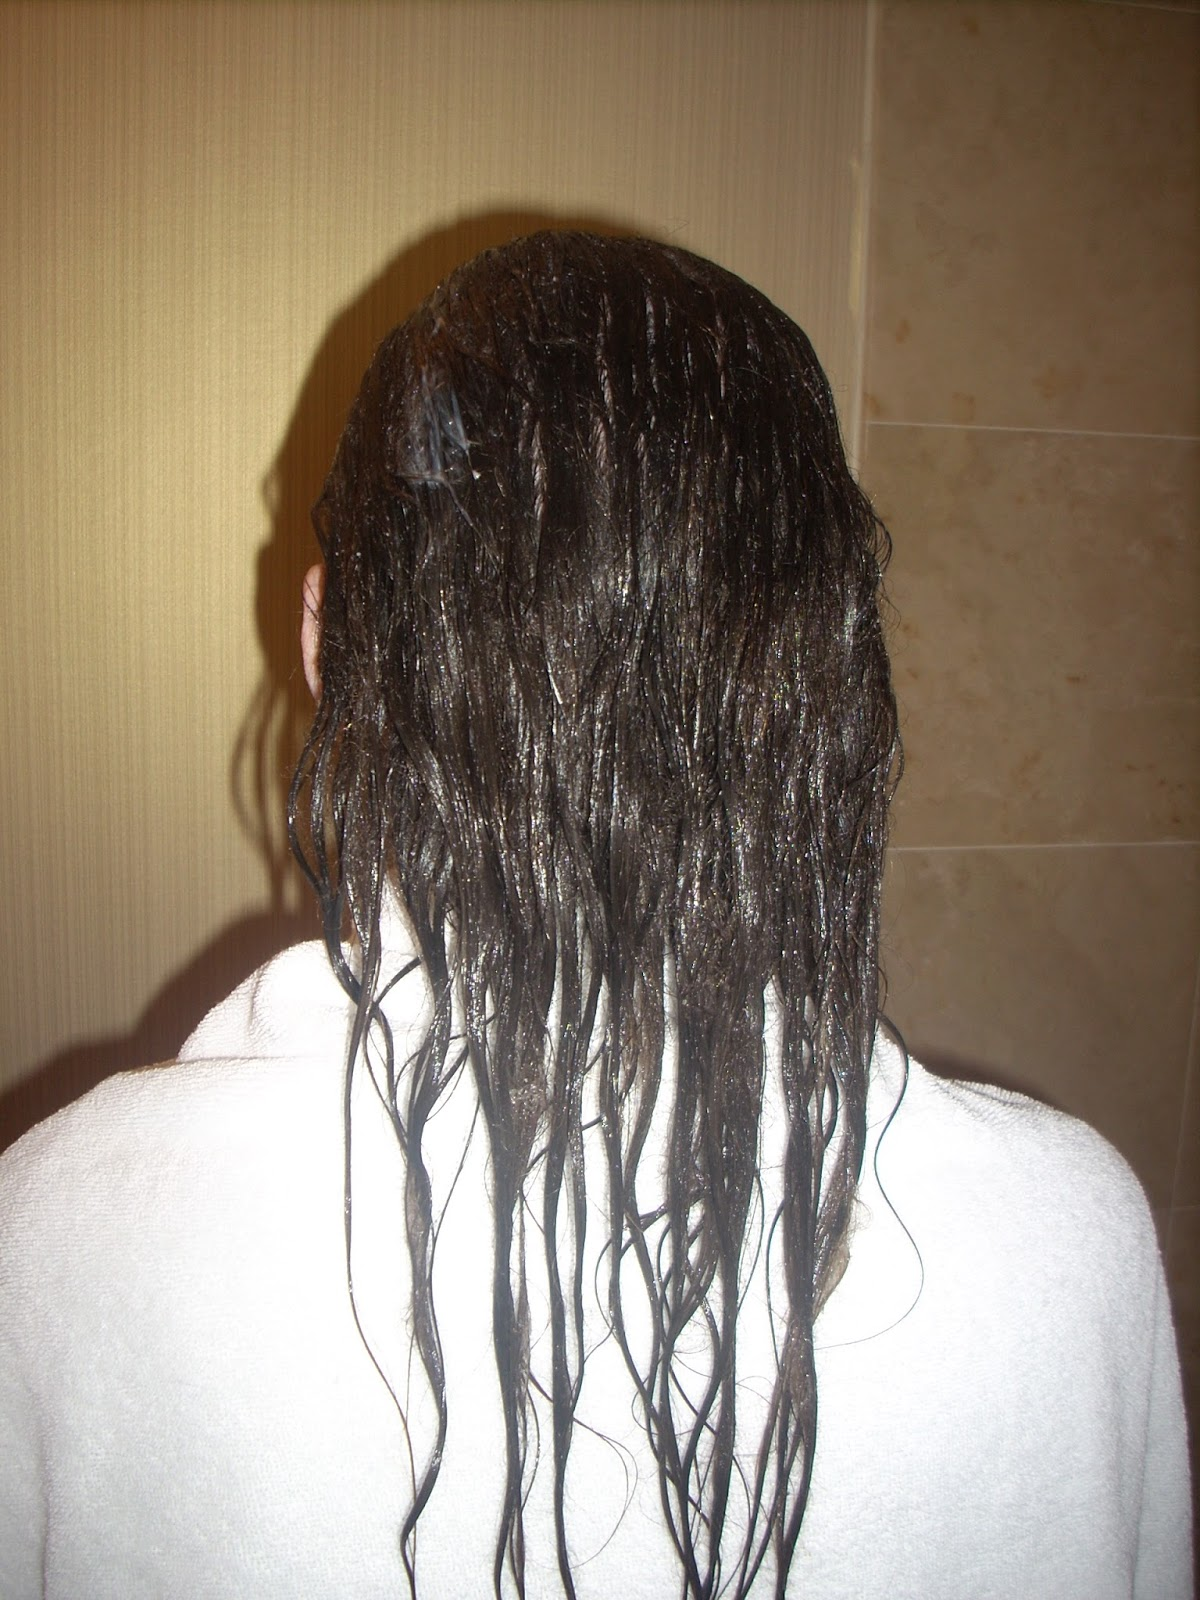 Tangled Hair Techs How To Detangle Dry Matted Hair Without Conditioner